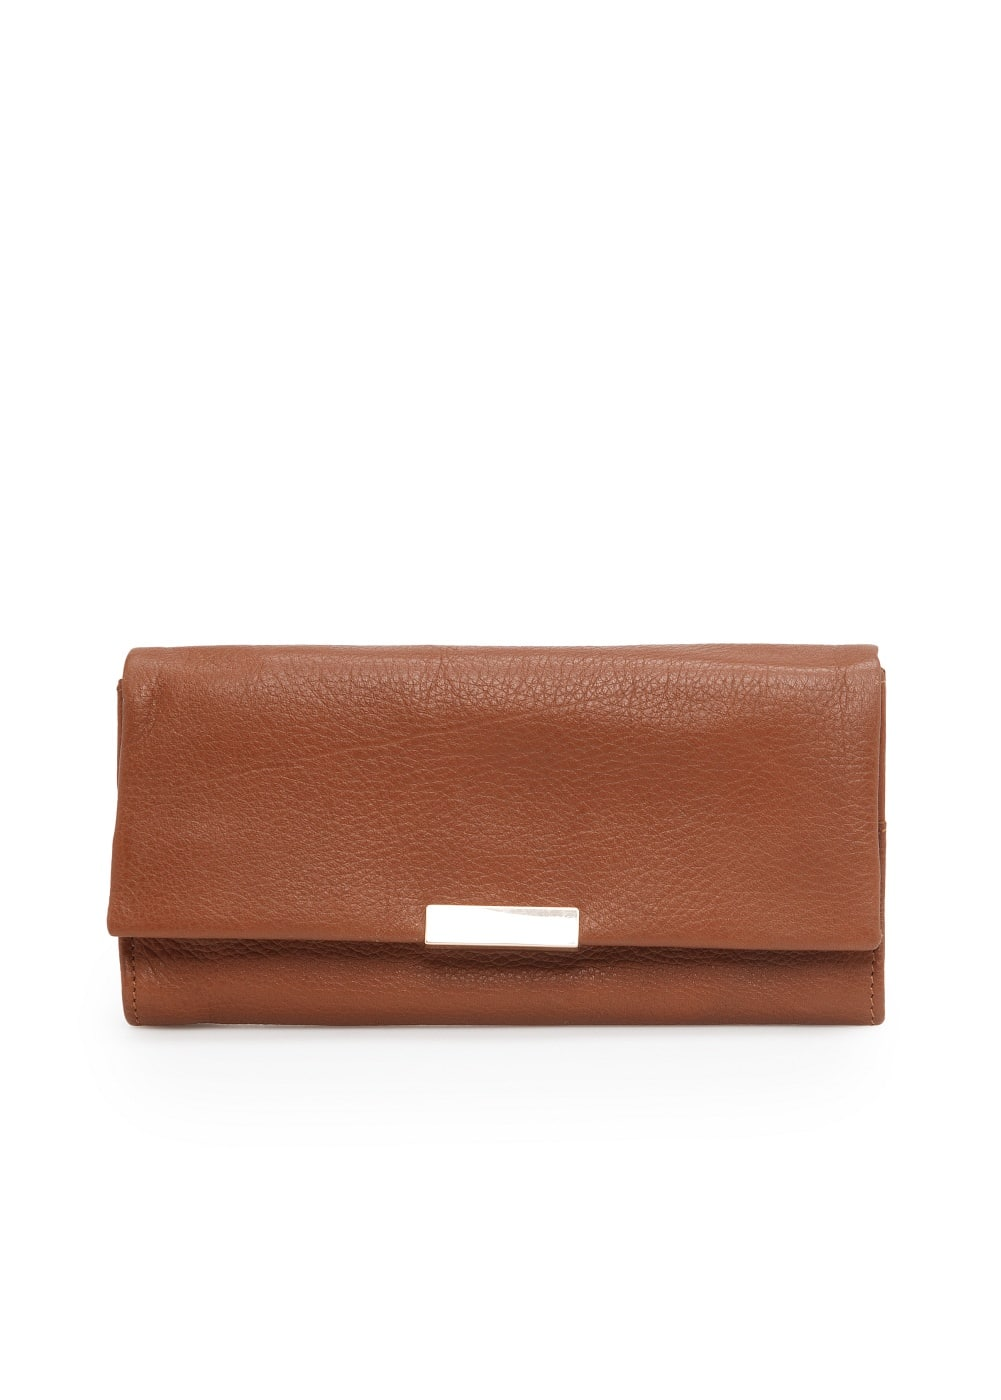 Flap leather wallet